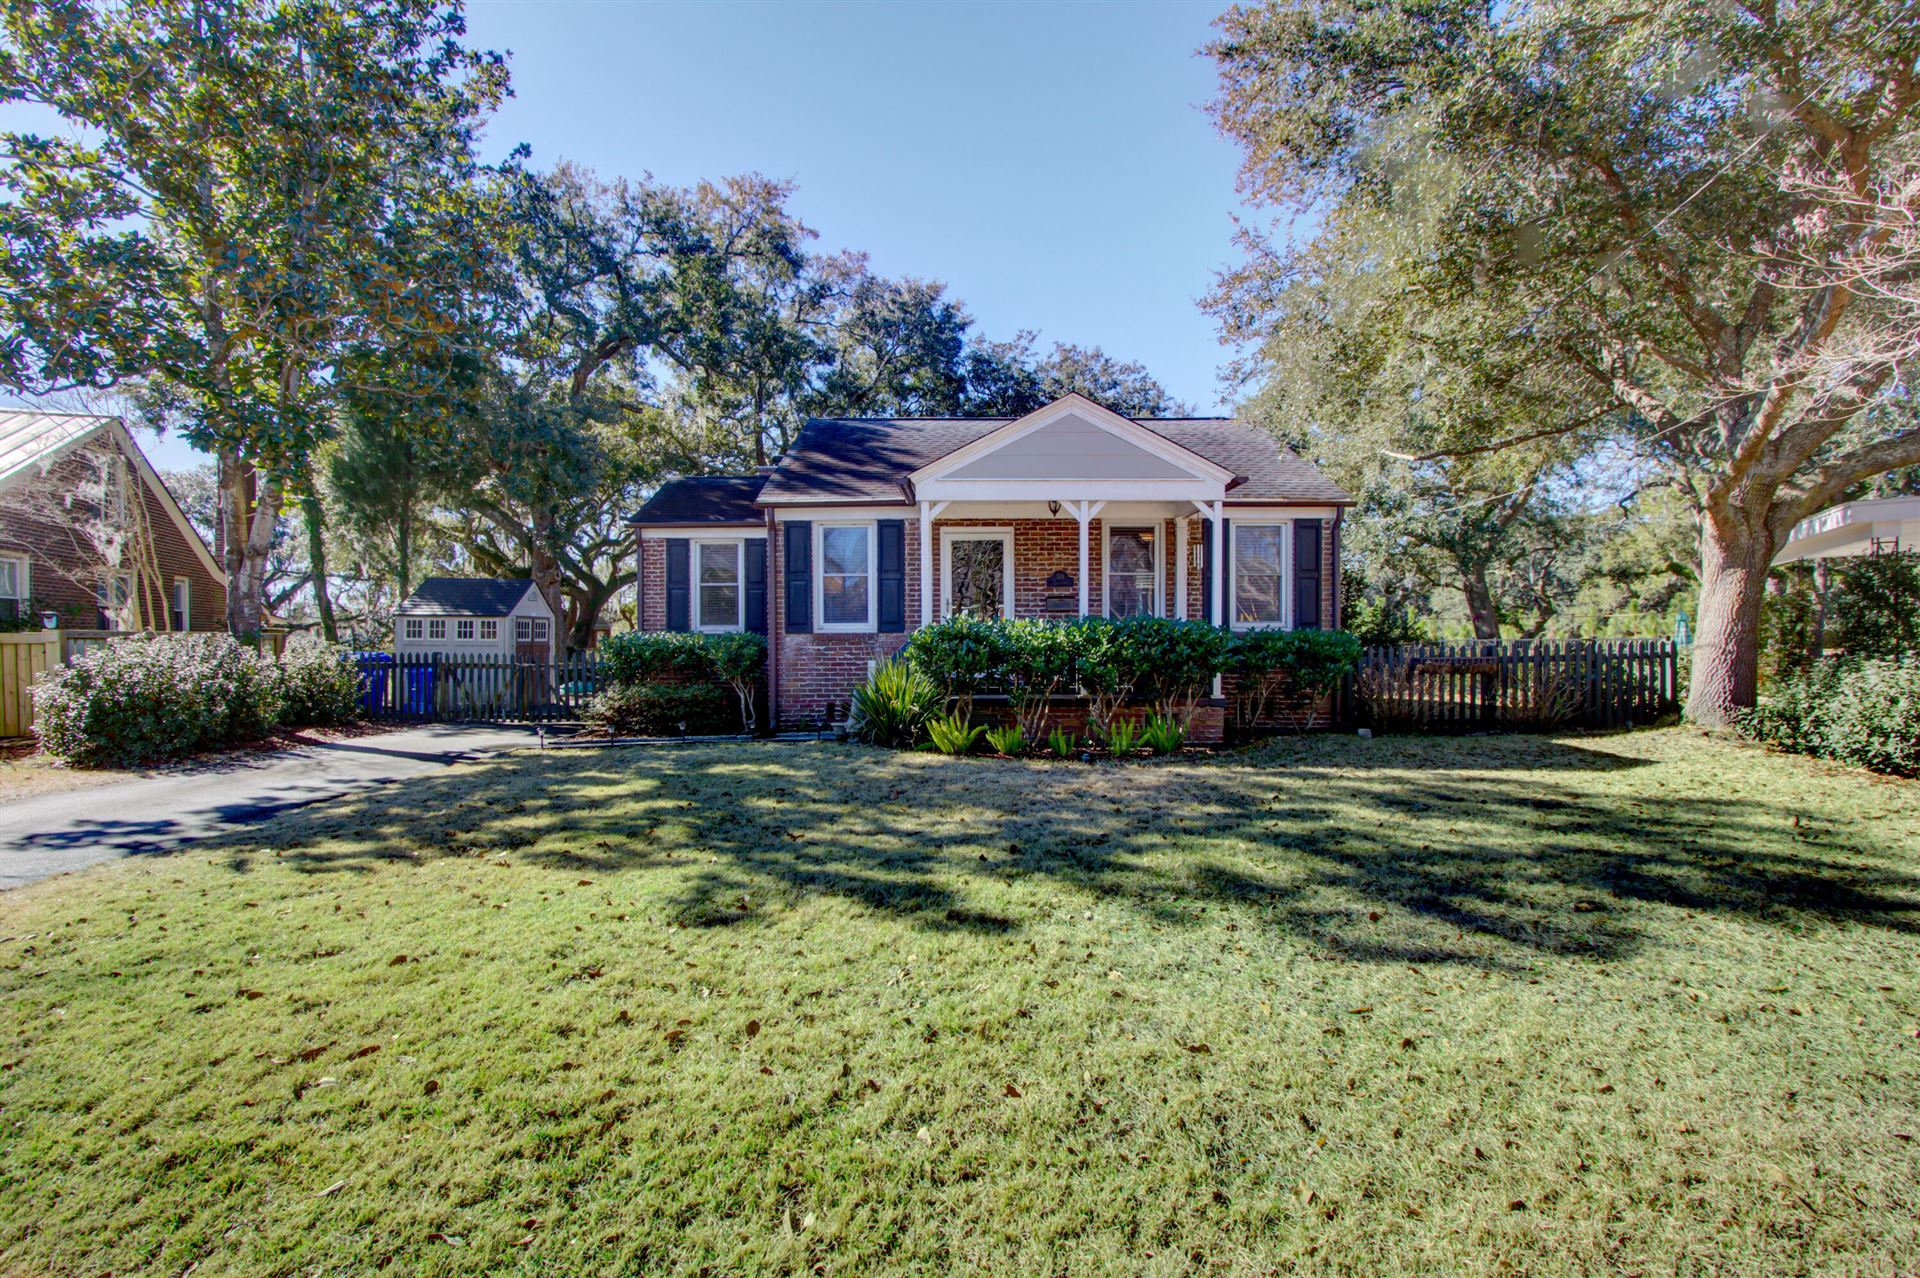 Photo of 50 Colleton Drive, Charleston, SC 29407 (MLS # 21004784)